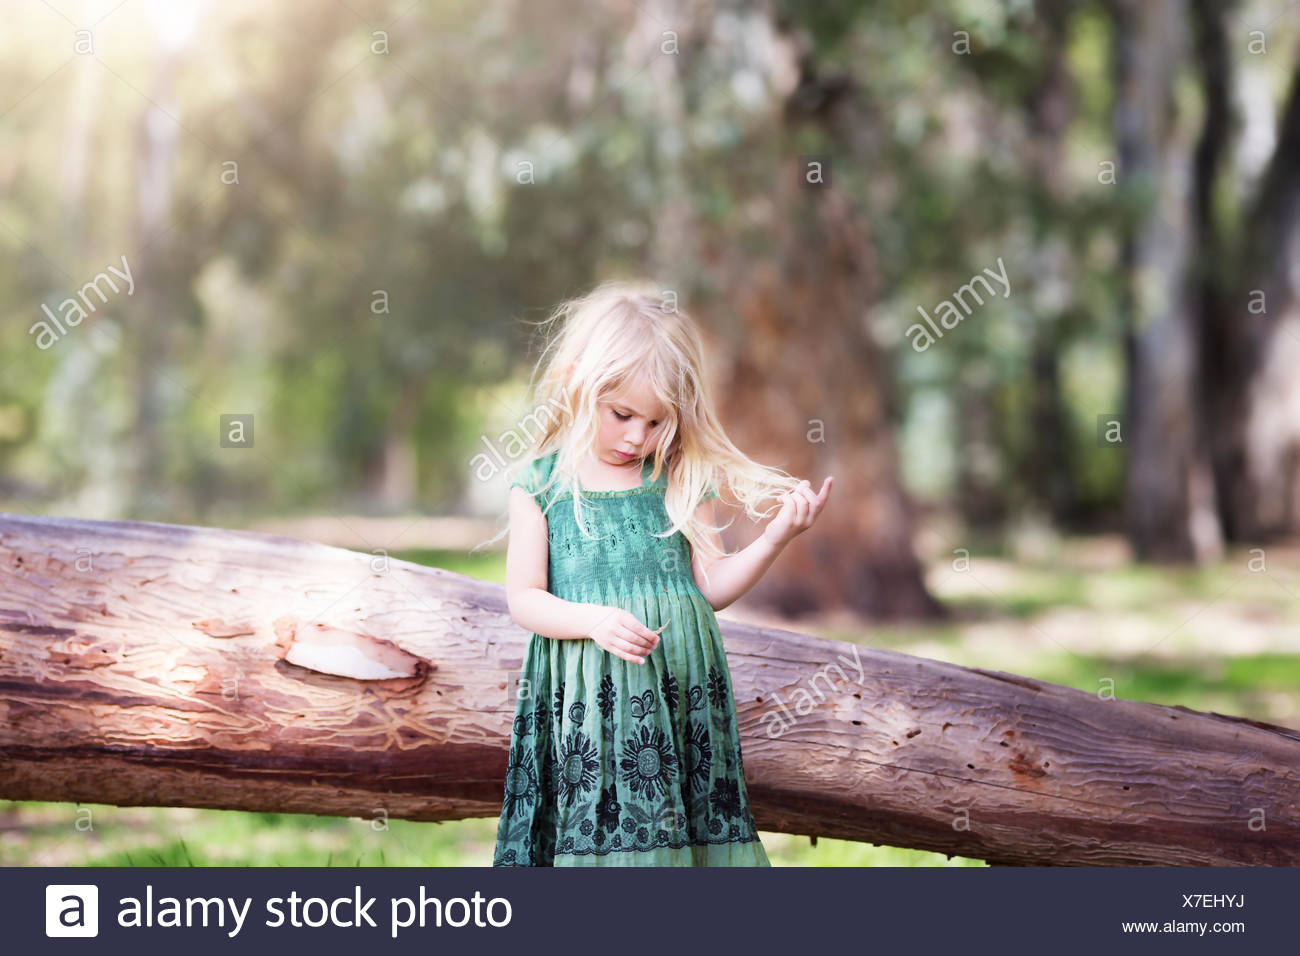 Girl (4-5) playing with hair in woodland - Stock Image